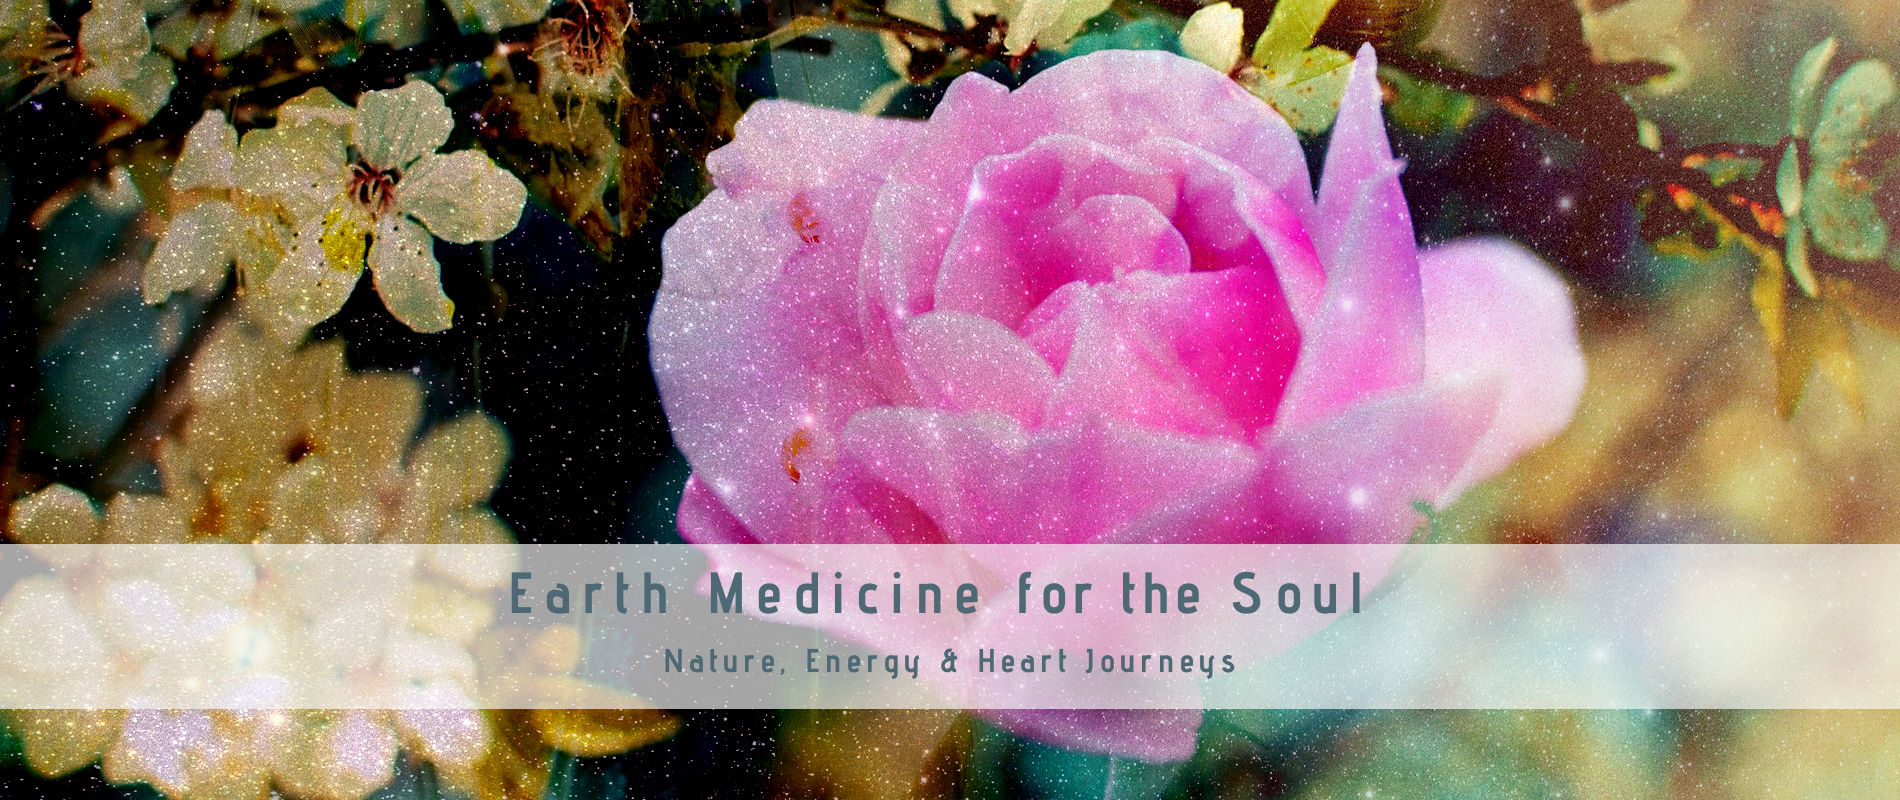 Aleksandra Rechtman – Medicine for the Soul – Nature, Energy and Heart Pathways to Inner Wisdom